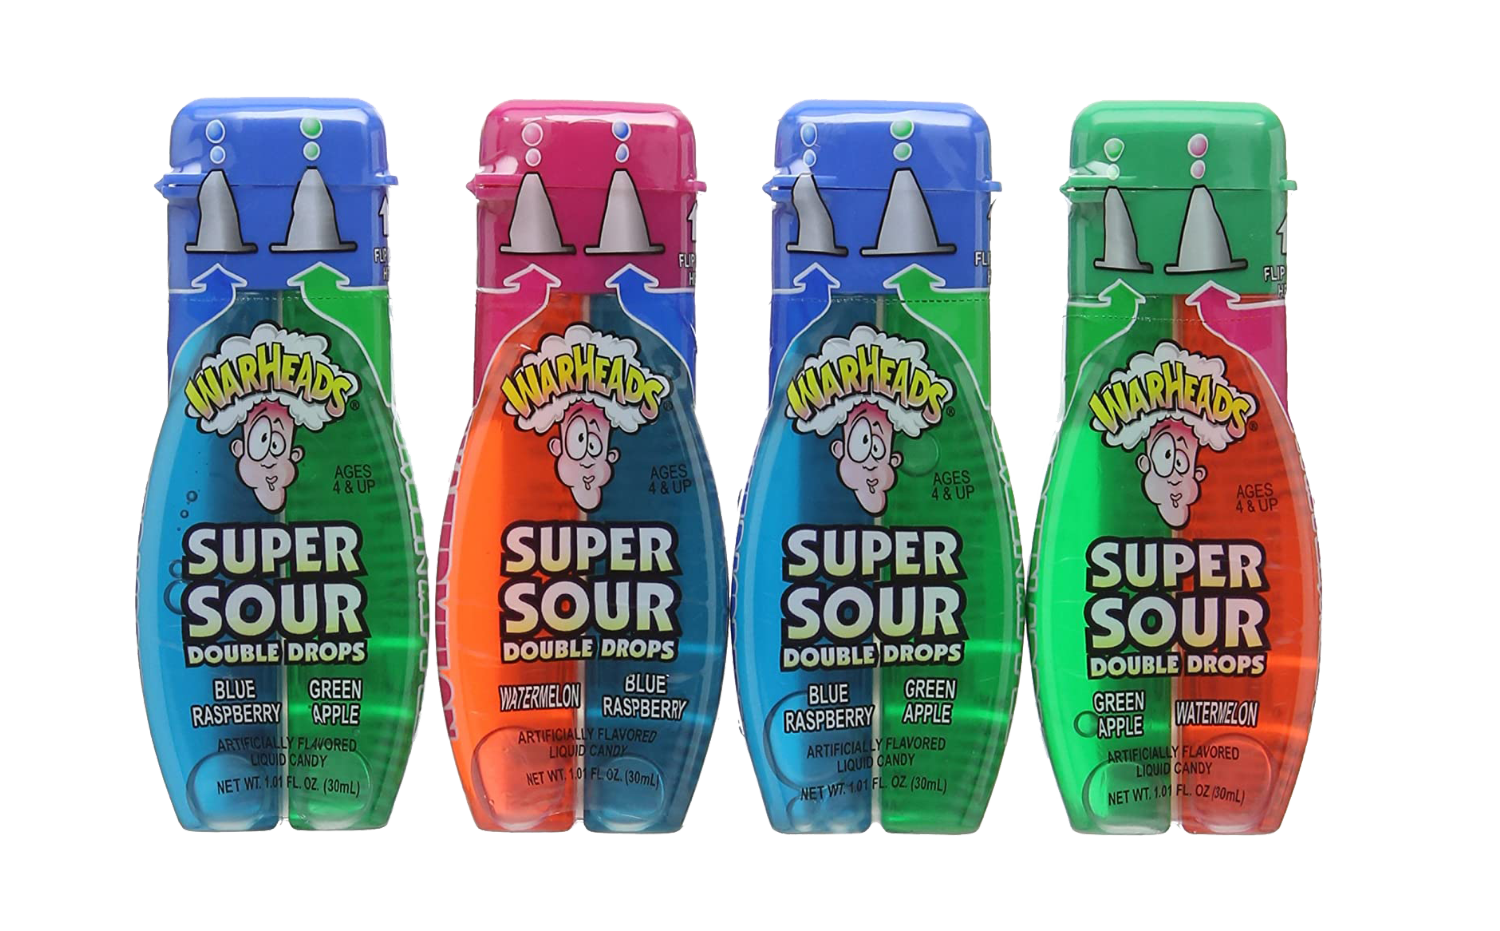 Warheads Double Drops Liquid 1oz Case of 24